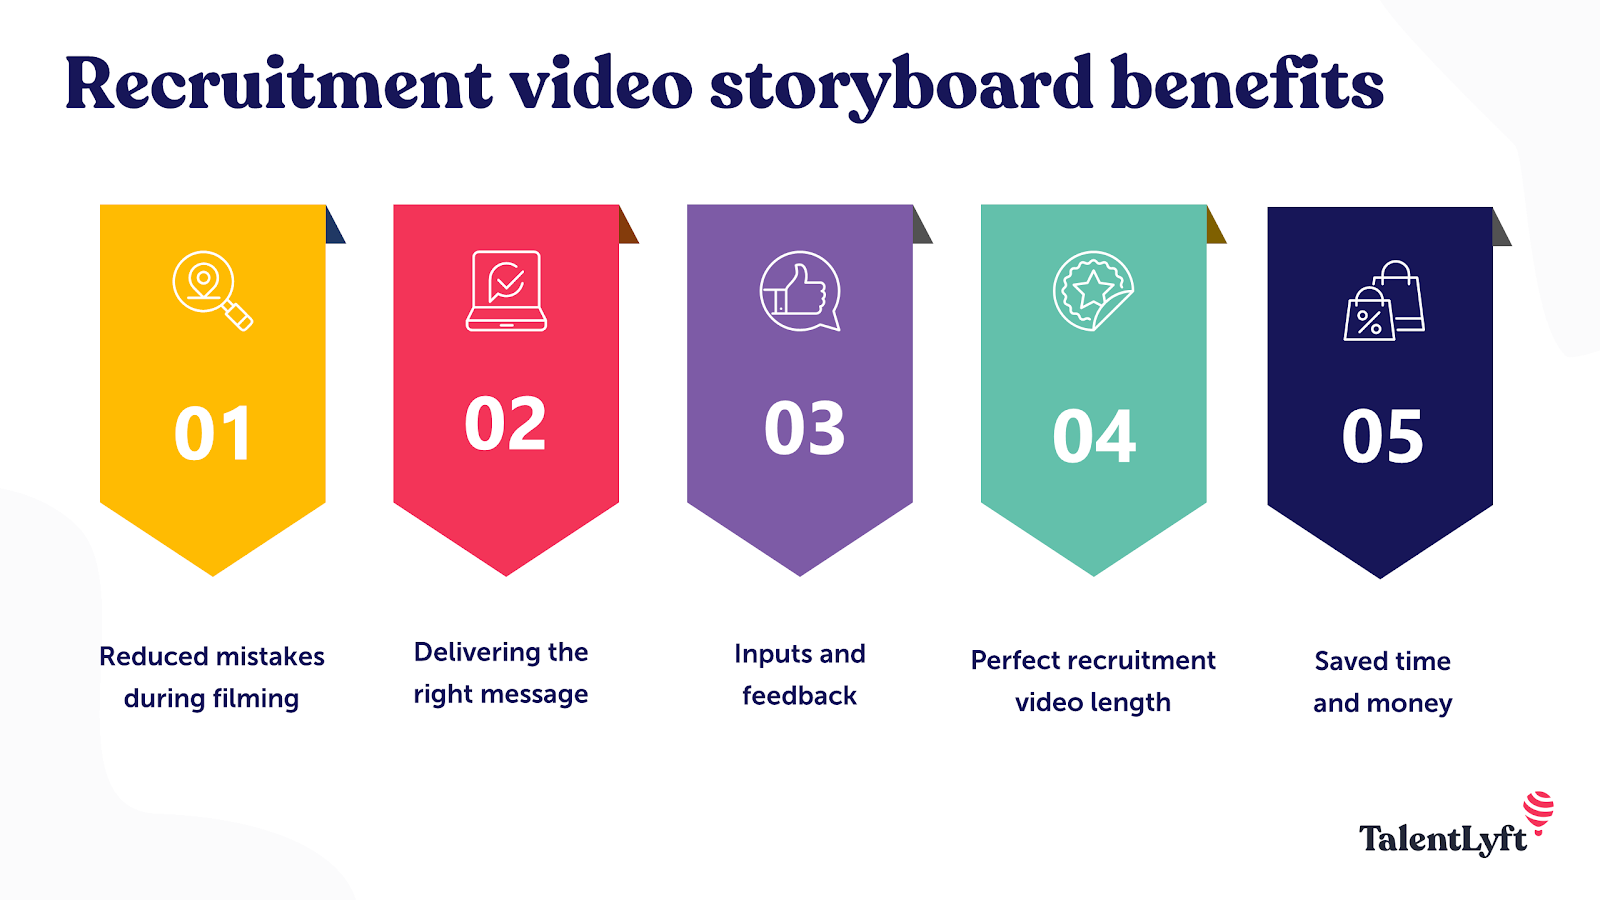 Why do you need to create a recruitment video storyboard